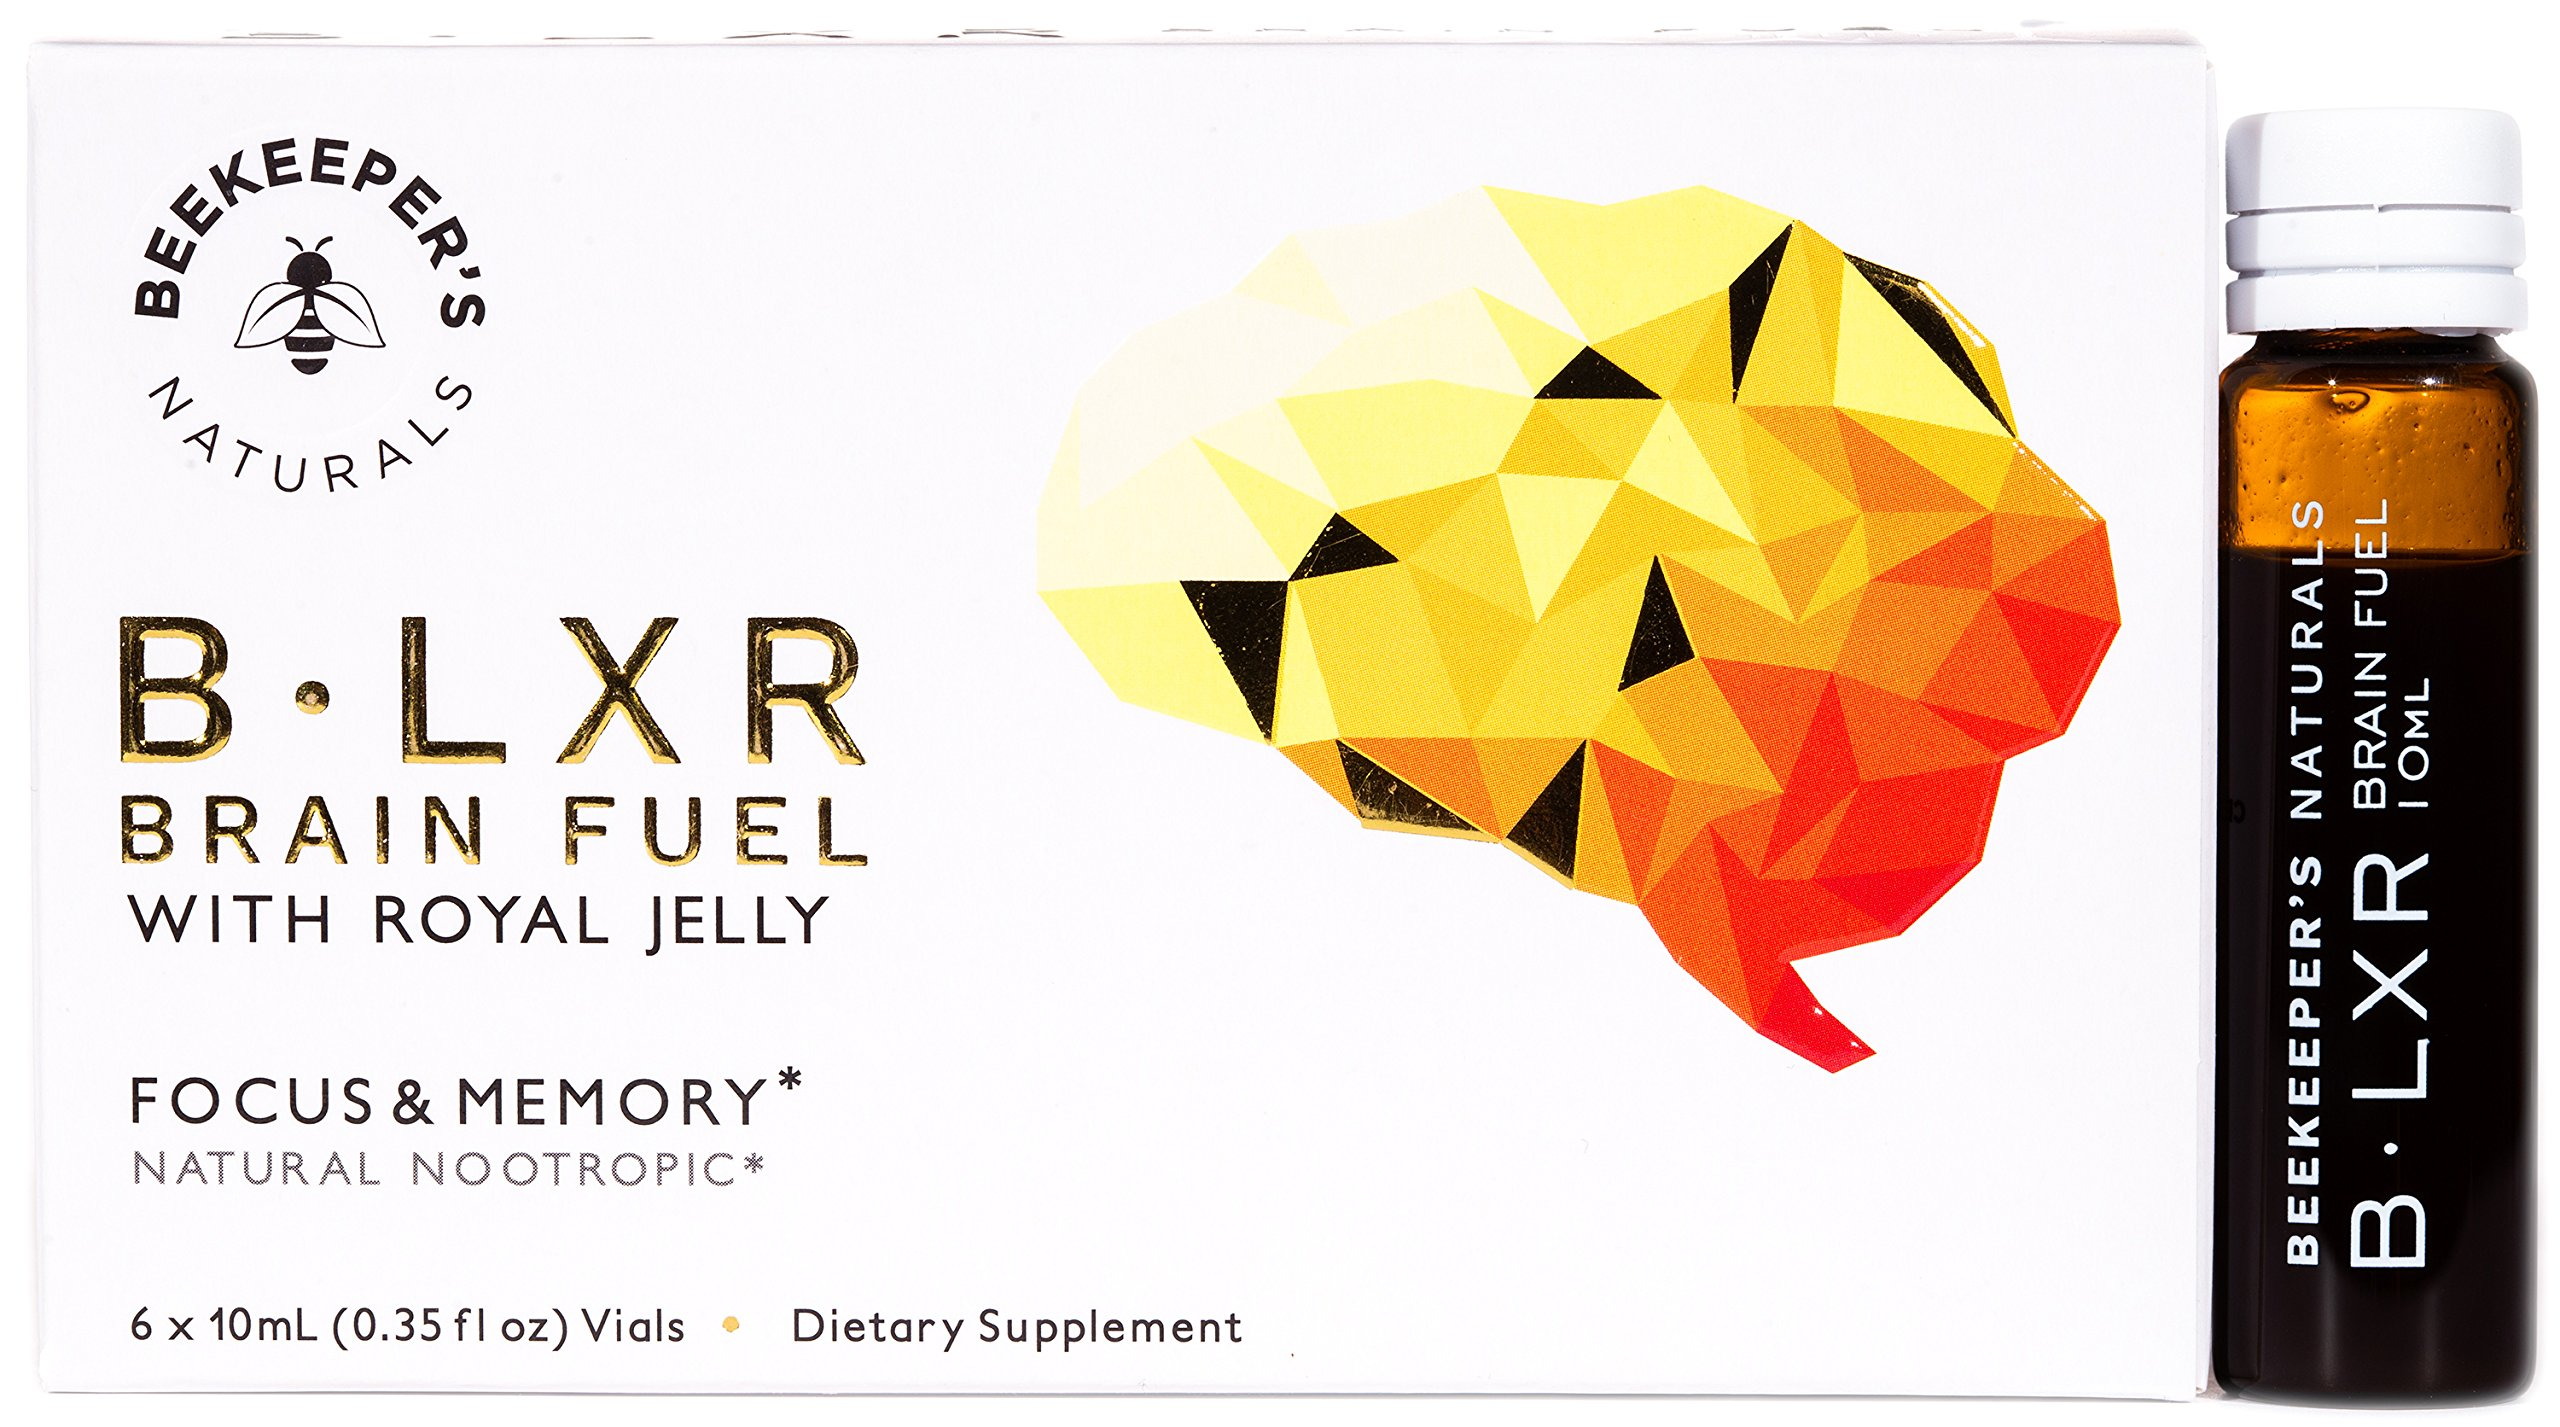 BLXR Brain Fuel by Beekeeper's Naturals | 6 Vials | Nootropic Brain Supplement with Royal Jelly, Ginkgo Biloba and Bacopa | Supports Mental Clarity, Focus, Memory and BDNF | Caffeine Free